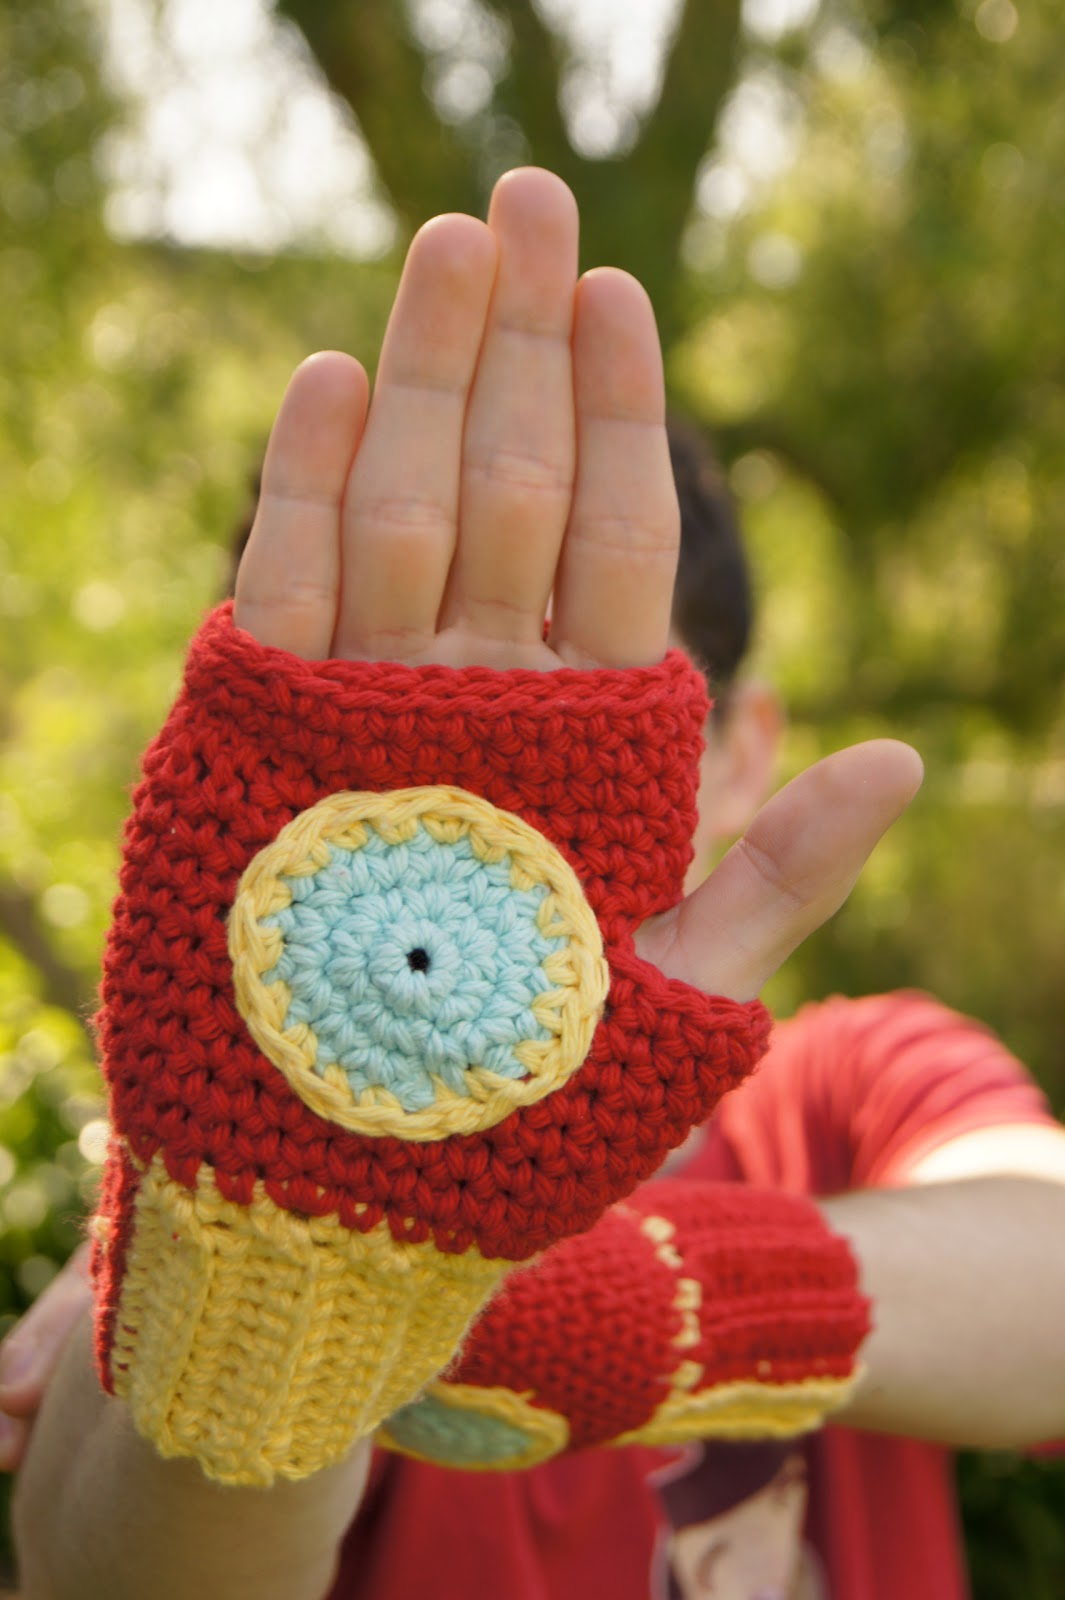 A free crochet tutorial and pattern for Iron Man fingerless mittens. I saw pictures of these mitts on the internet and designed my own simple pattern.